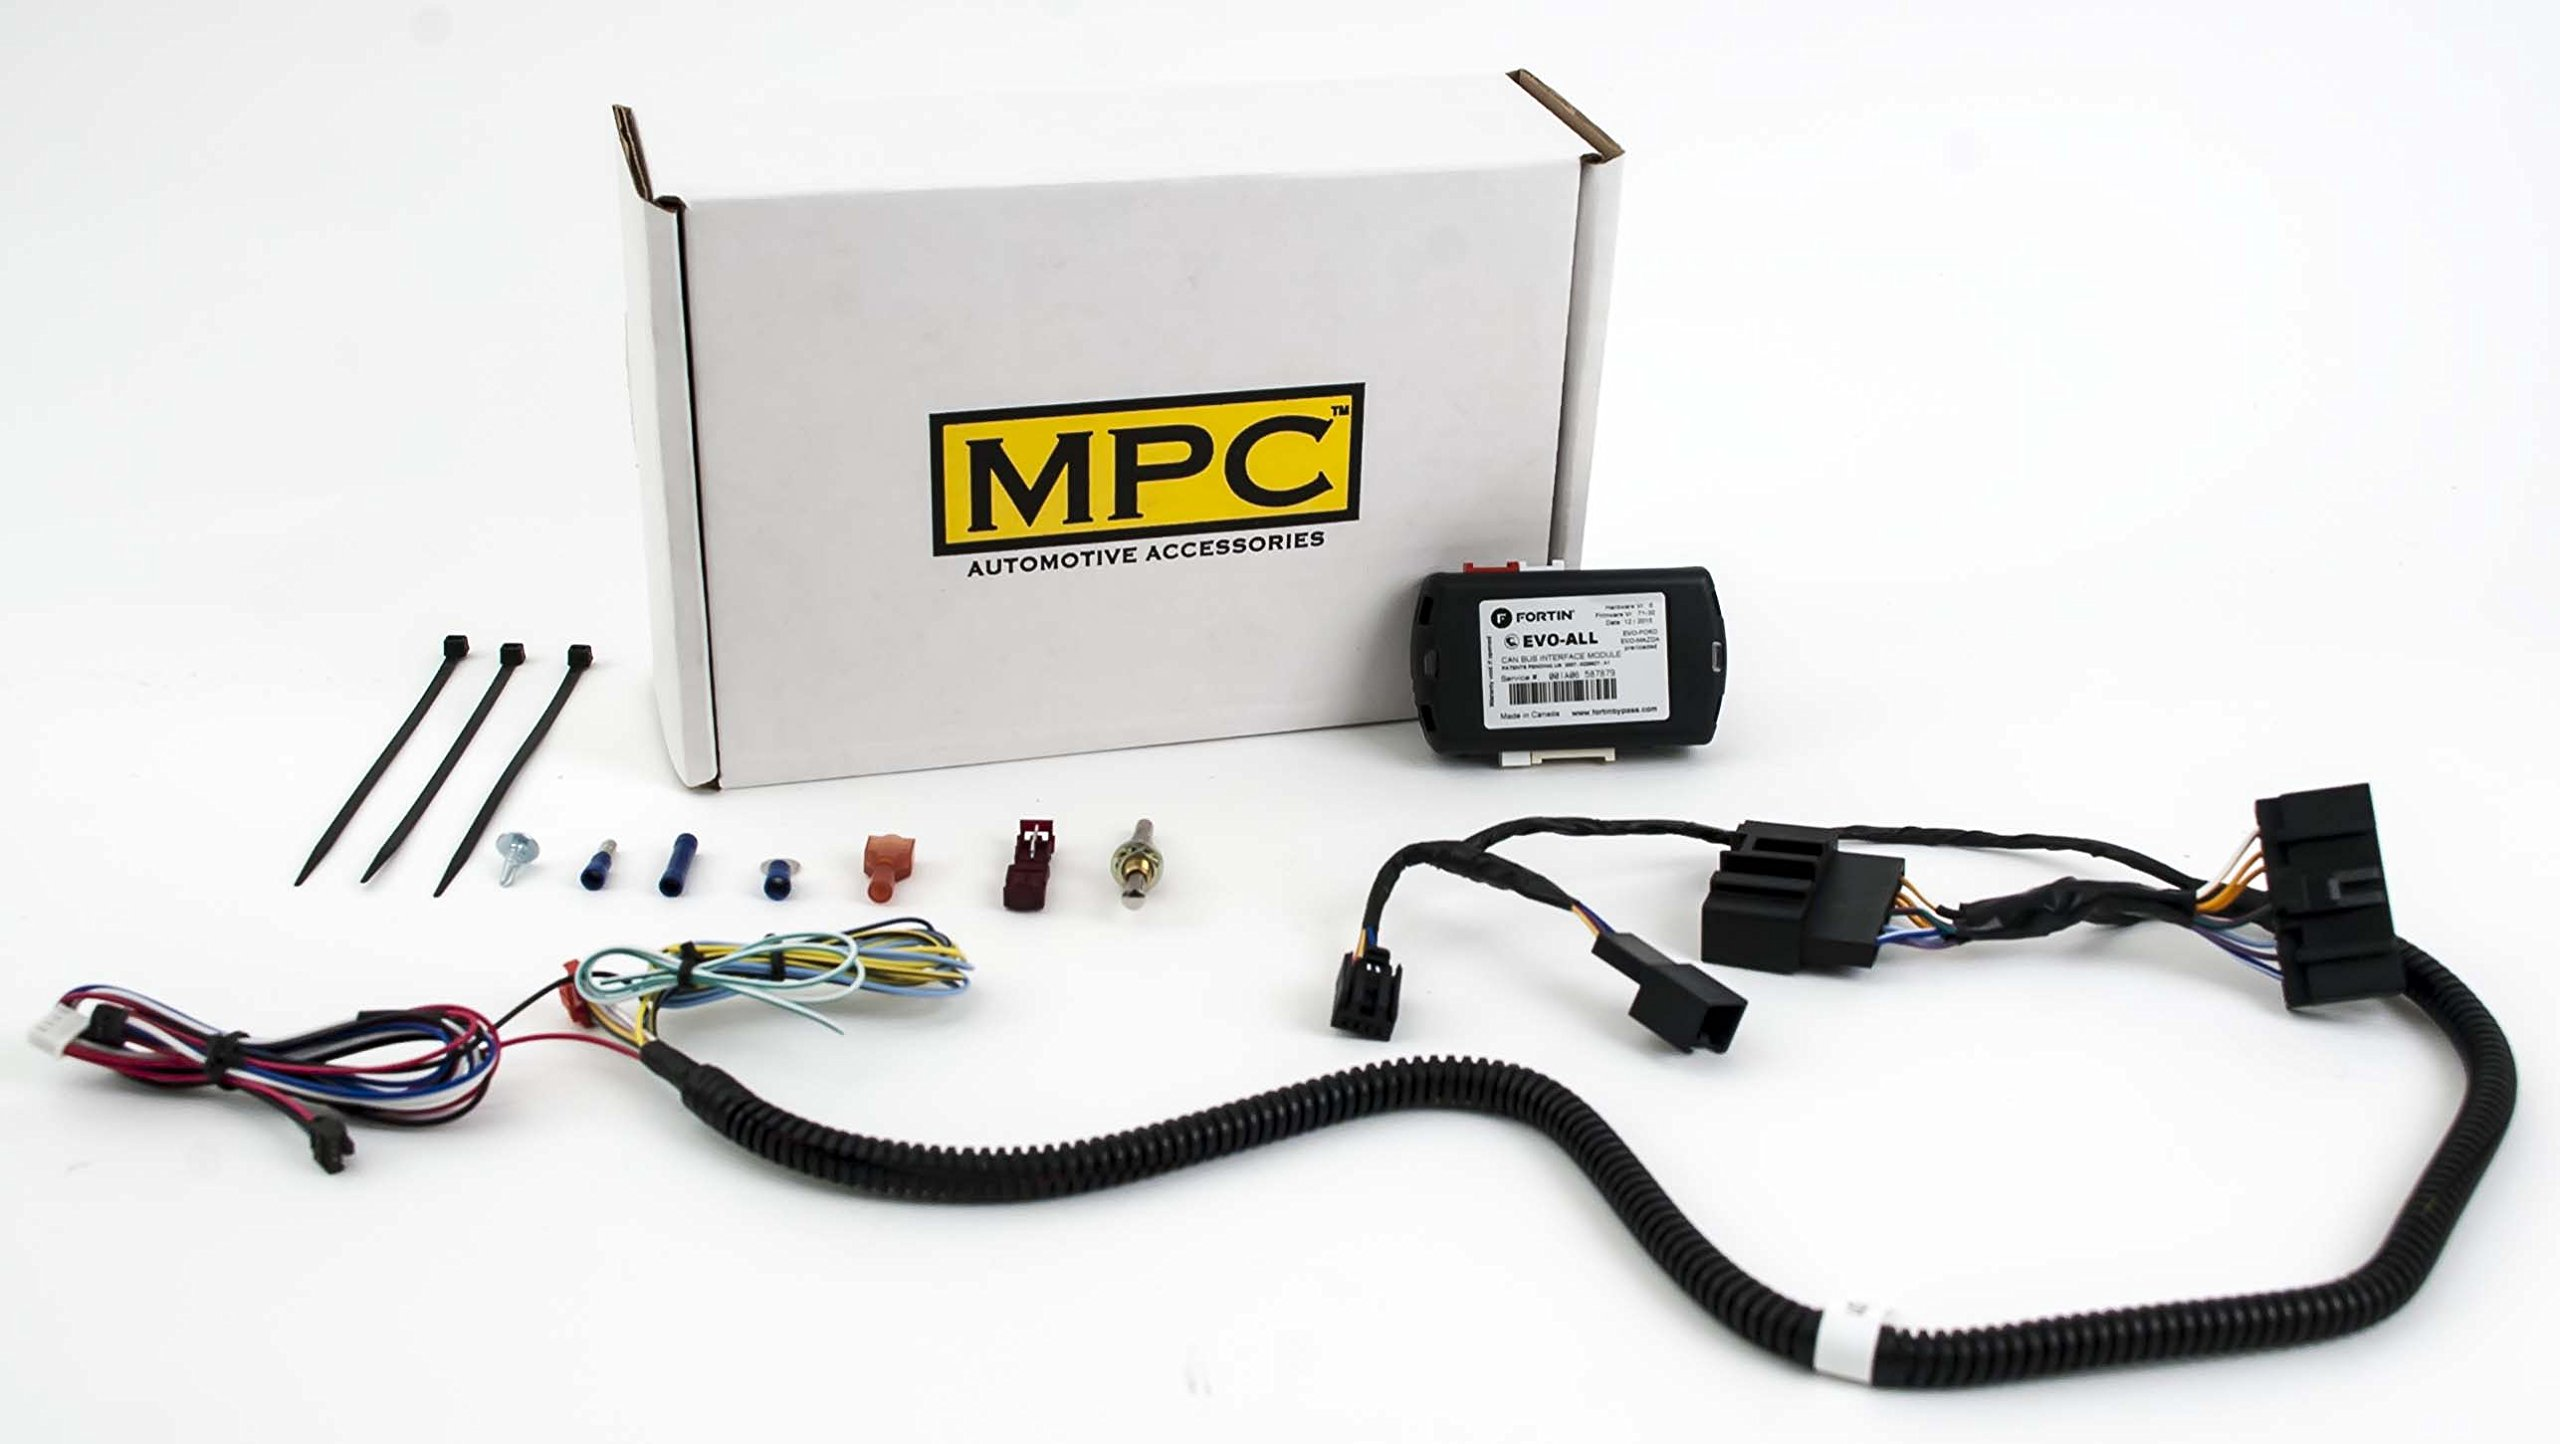 Complete Remote Start Kit Fits Select Ford & Mazda Vehicles 2007 - 2014 - Use Your Factory OEM Remotes!